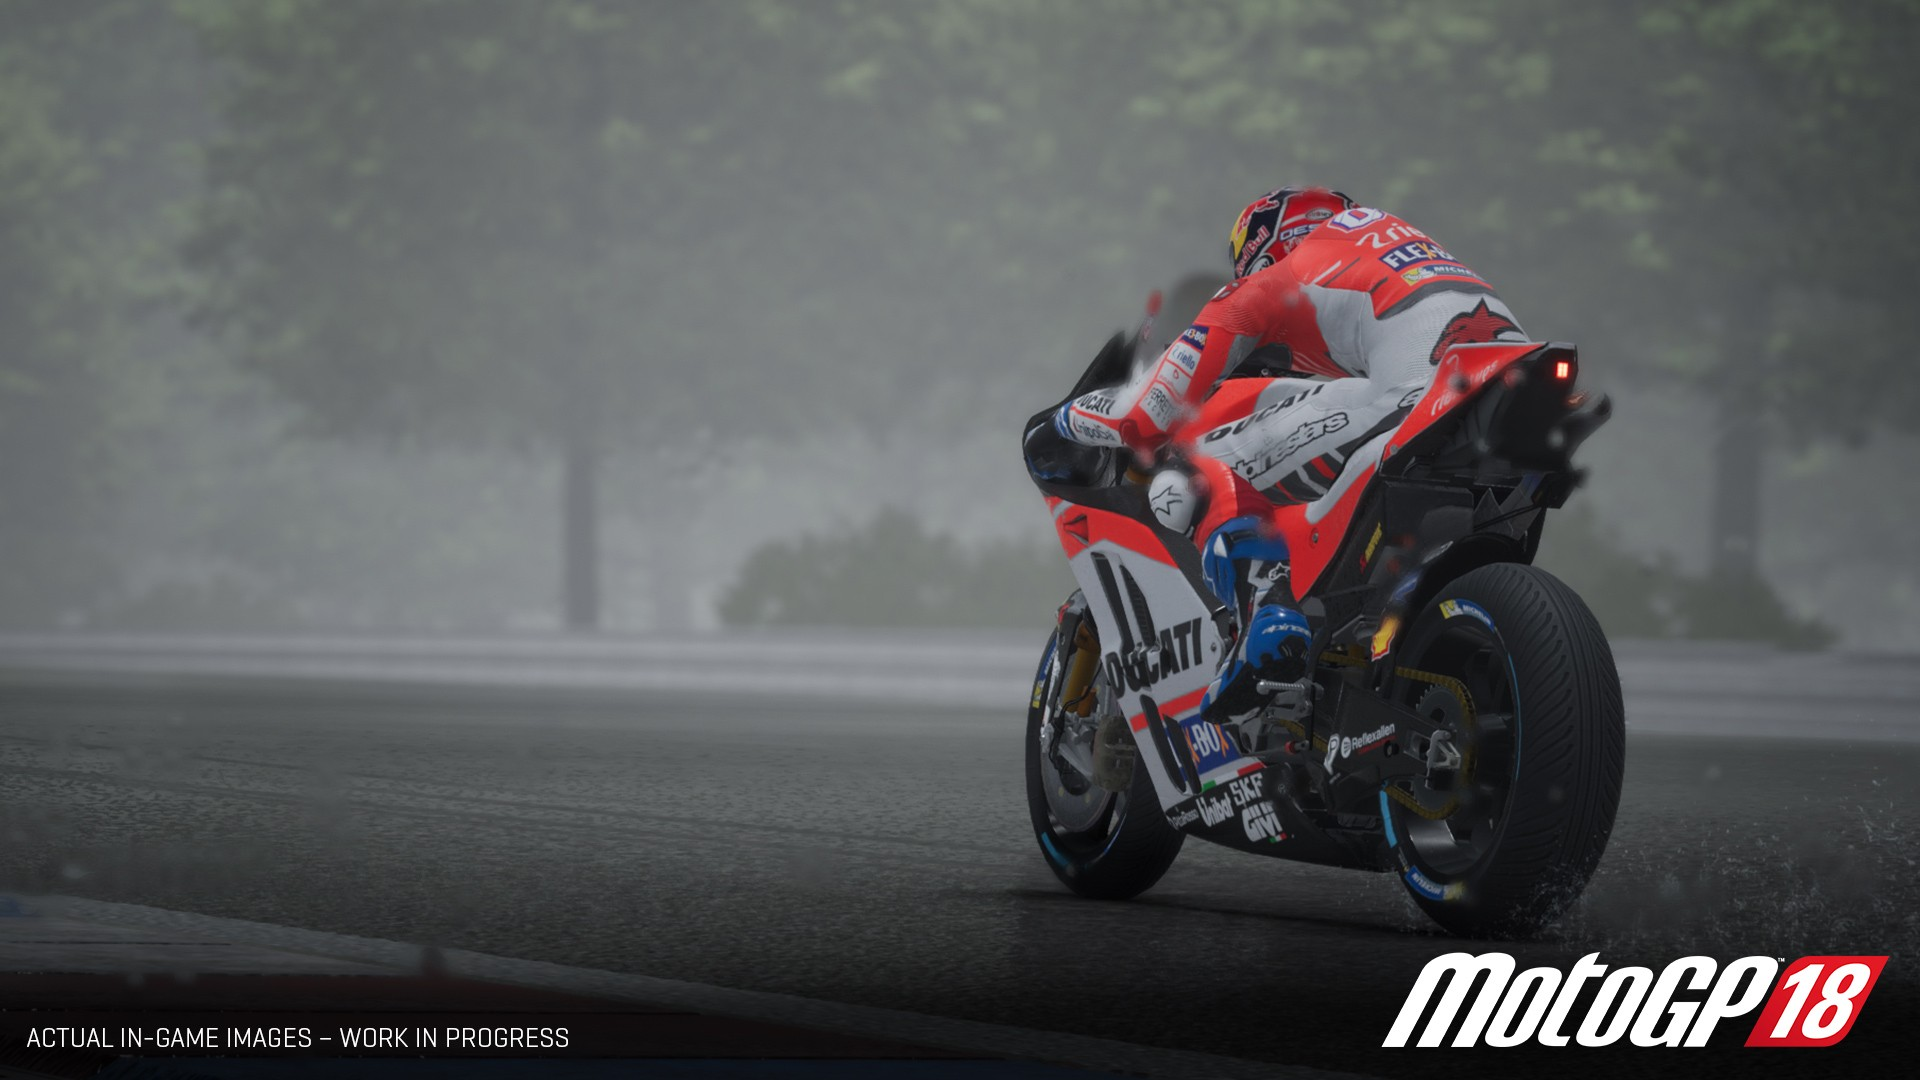 See How the MotoGP 18 Video Game Is Made in Behind the Scenes Footage - autoevolution